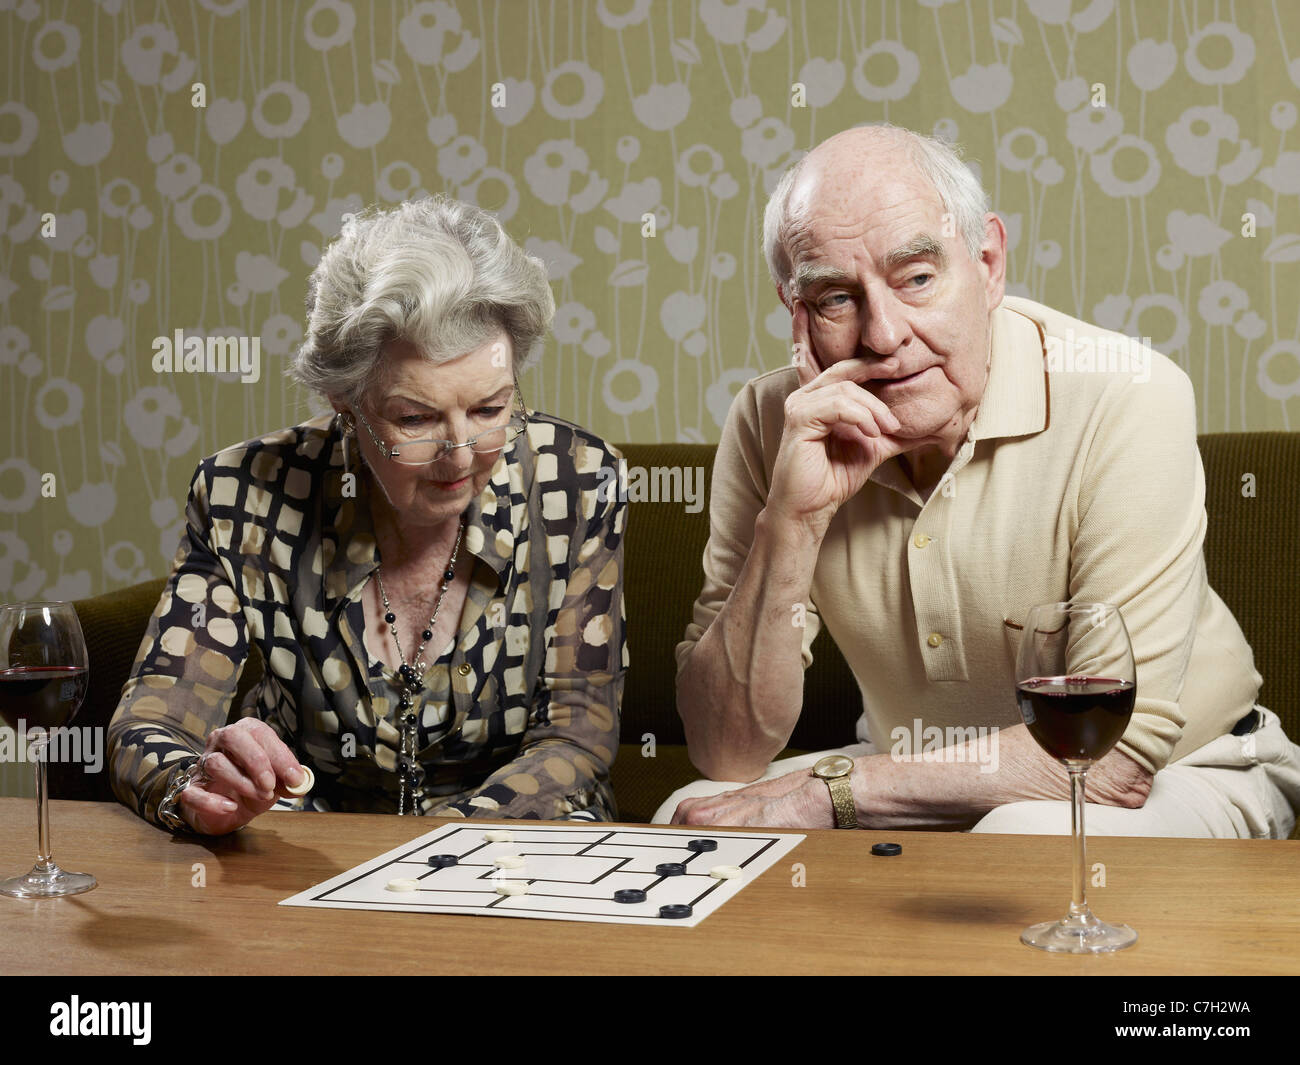 Senior couple play muehle and man looks impatient - Stock Image